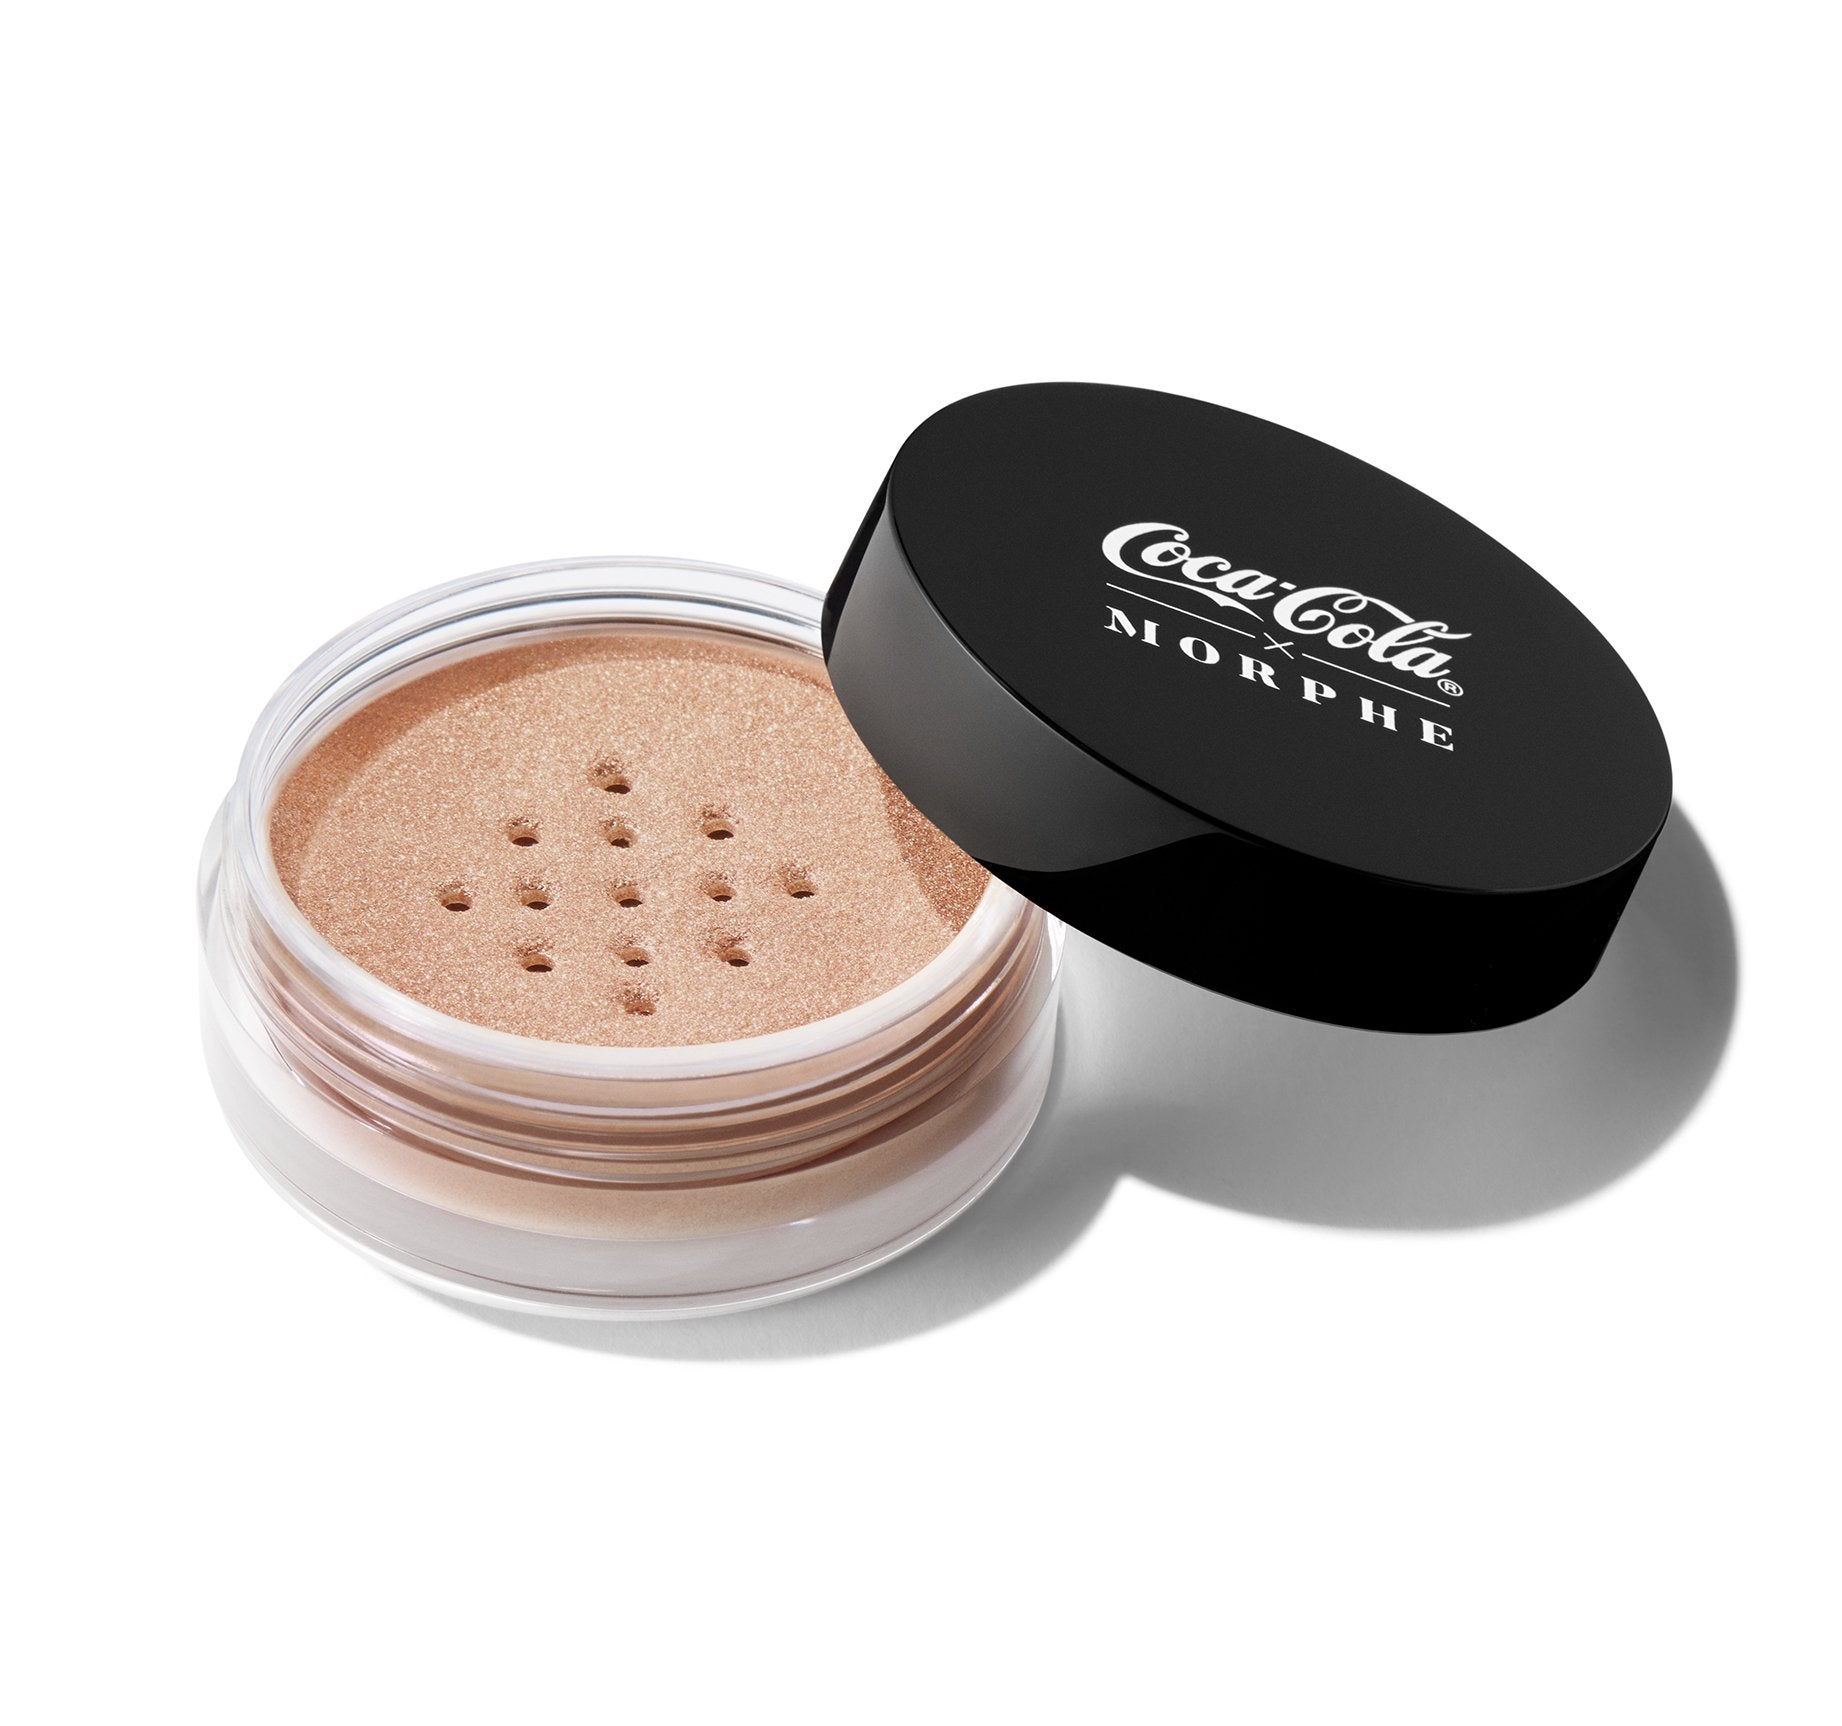 Coca Cola X Morphe Glowing Places Loose Highlighter Pop It Poshmark makes shopping fun, affordable & easy! coca cola x morphe glowing places loose highlighter pop it